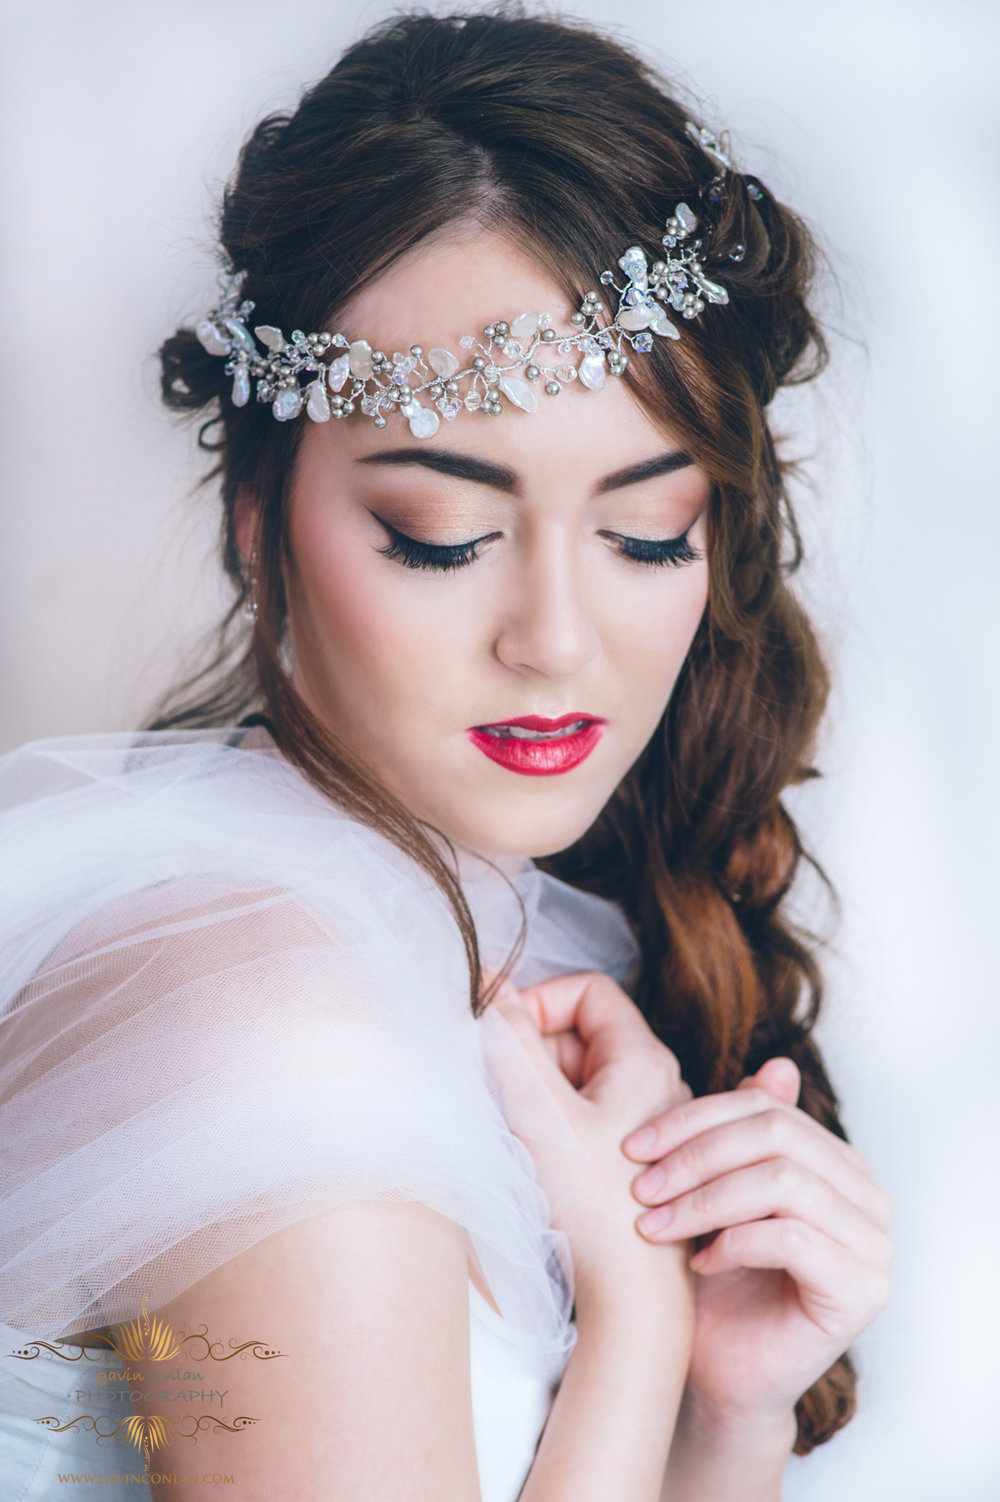 creative-bridal-hair-make-up-jewellery-photo-shoot-gavinconlanphotography-17